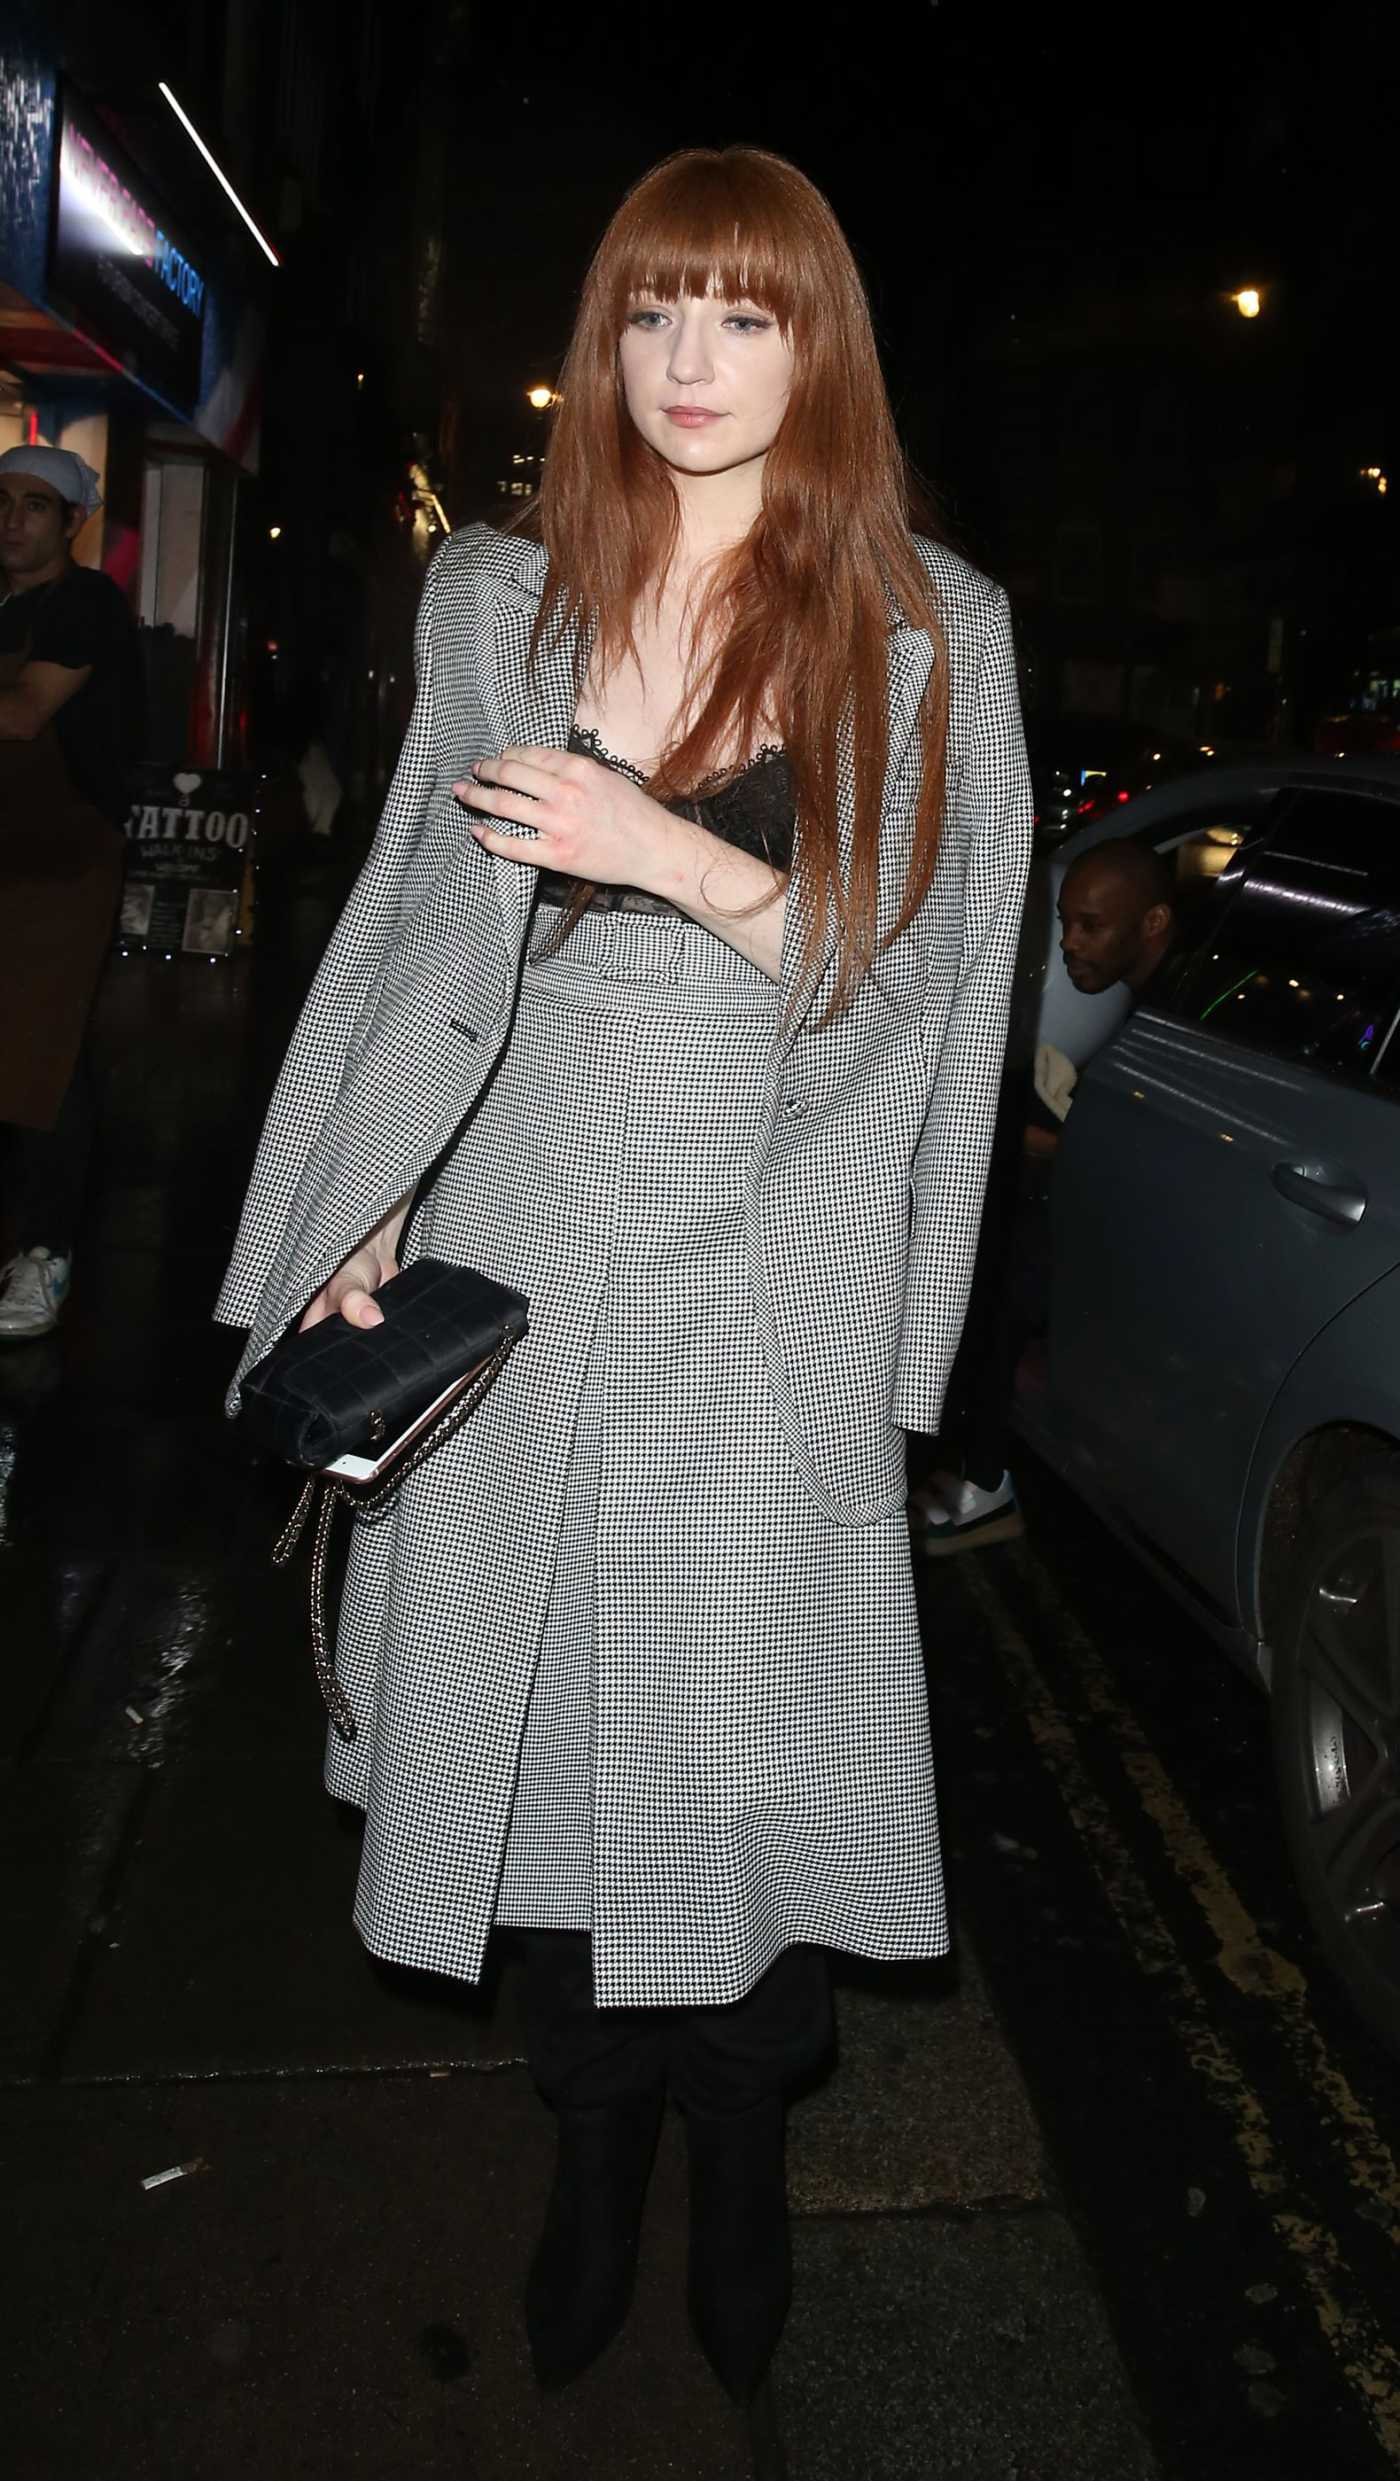 Nicola Roberts in a Gray Suit Arrives at Kimberley Walsh's Birthday Party in London 11/22/2019